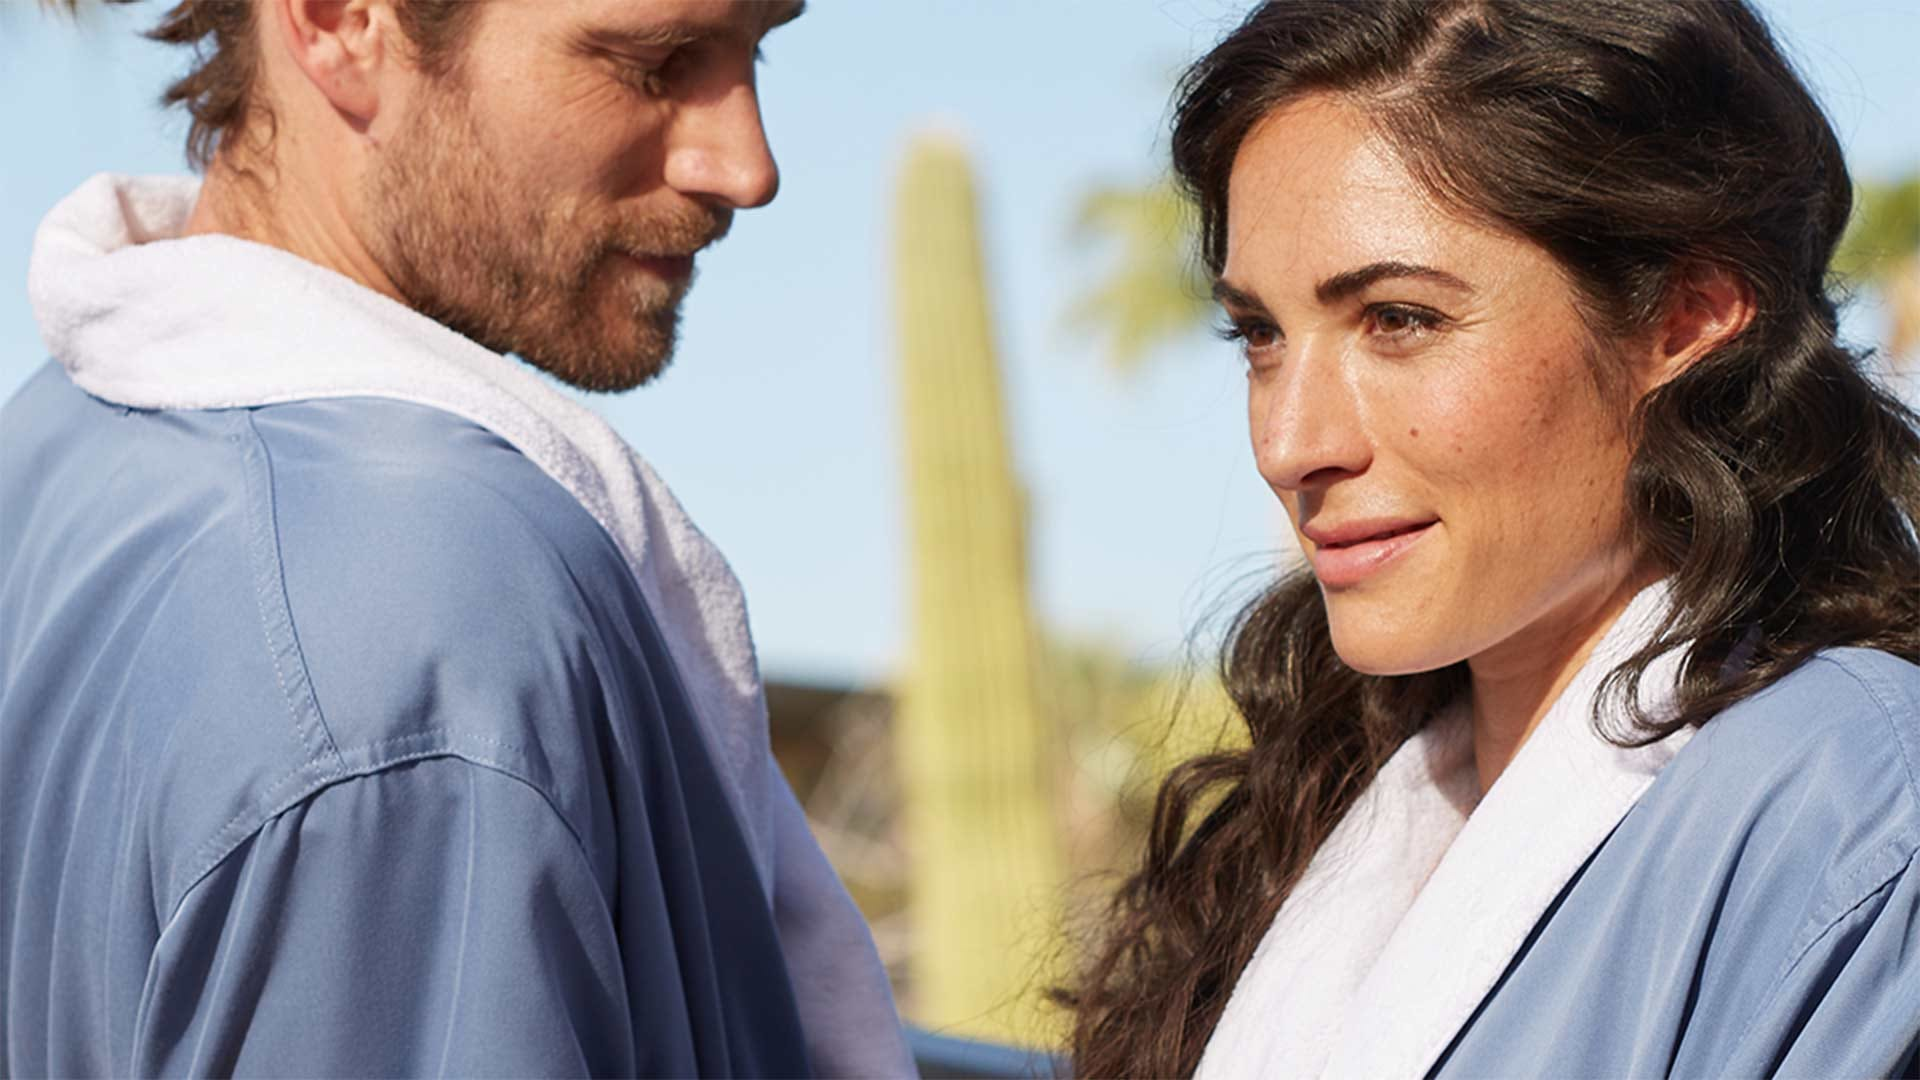 Man and woman in matching blue robes.